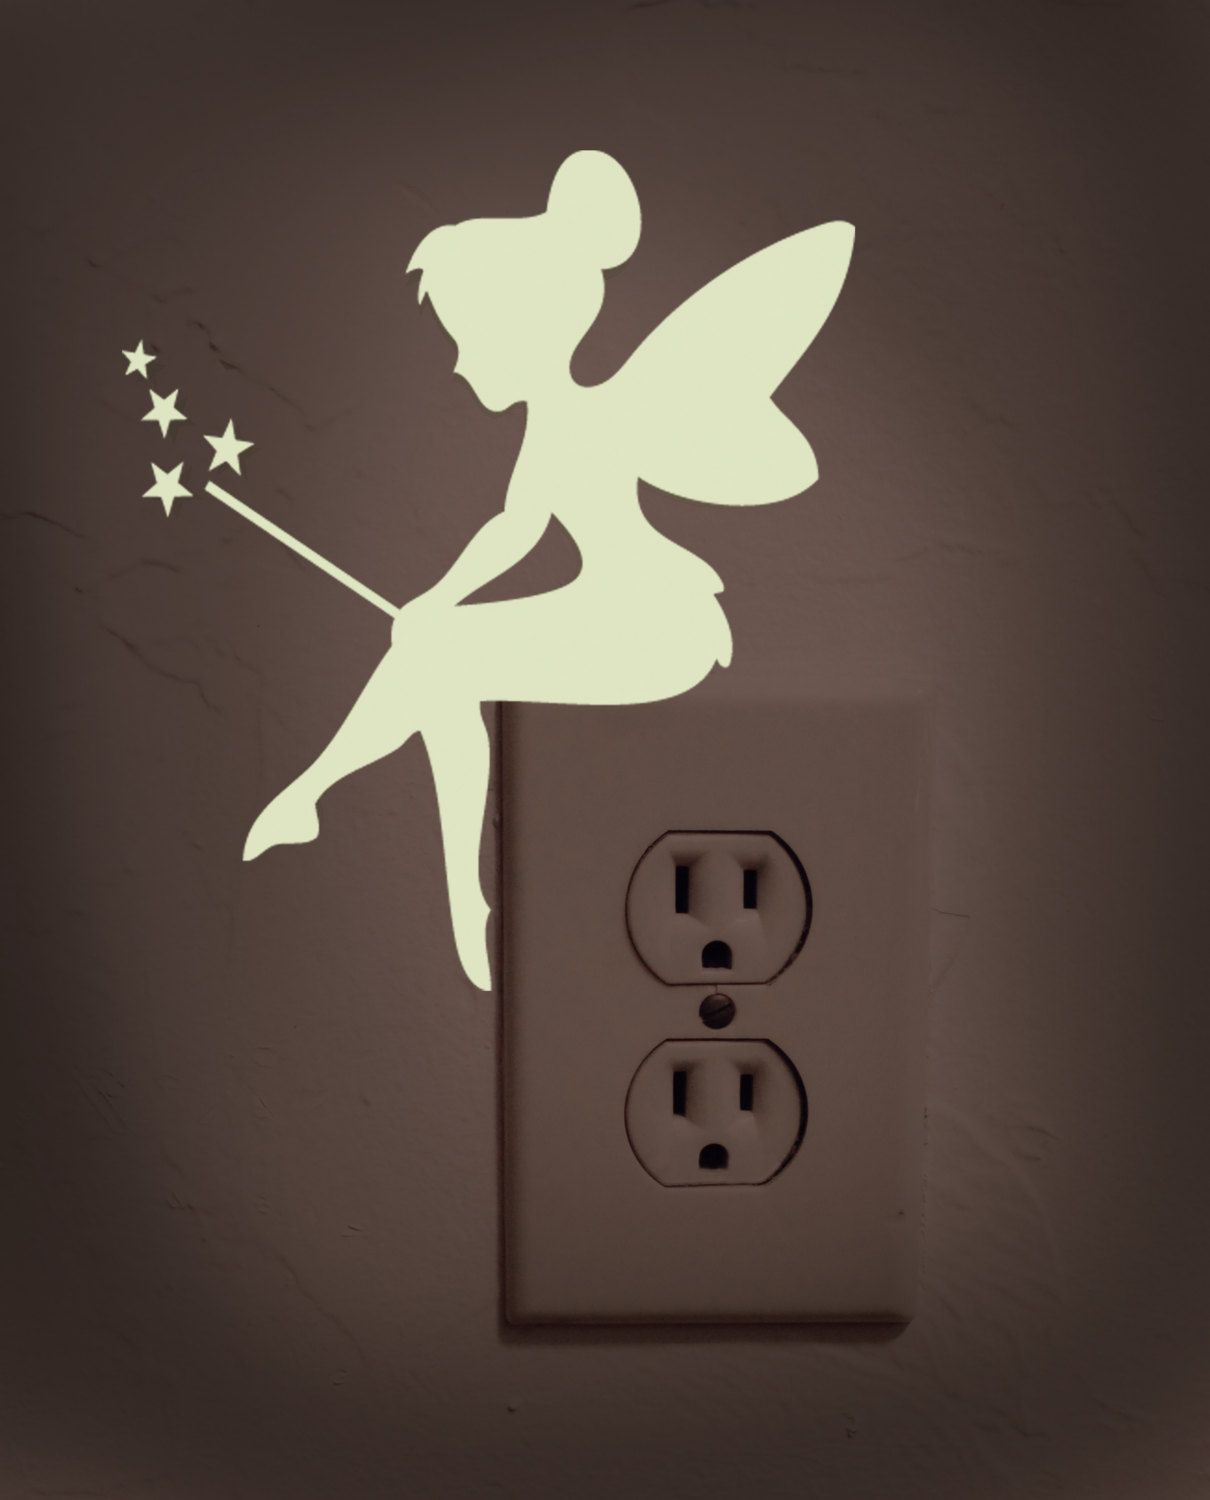 Wall stickers glowing - Popular Items For Light Switch Covers On Etsy Dark Fairiessticker Vinylwall